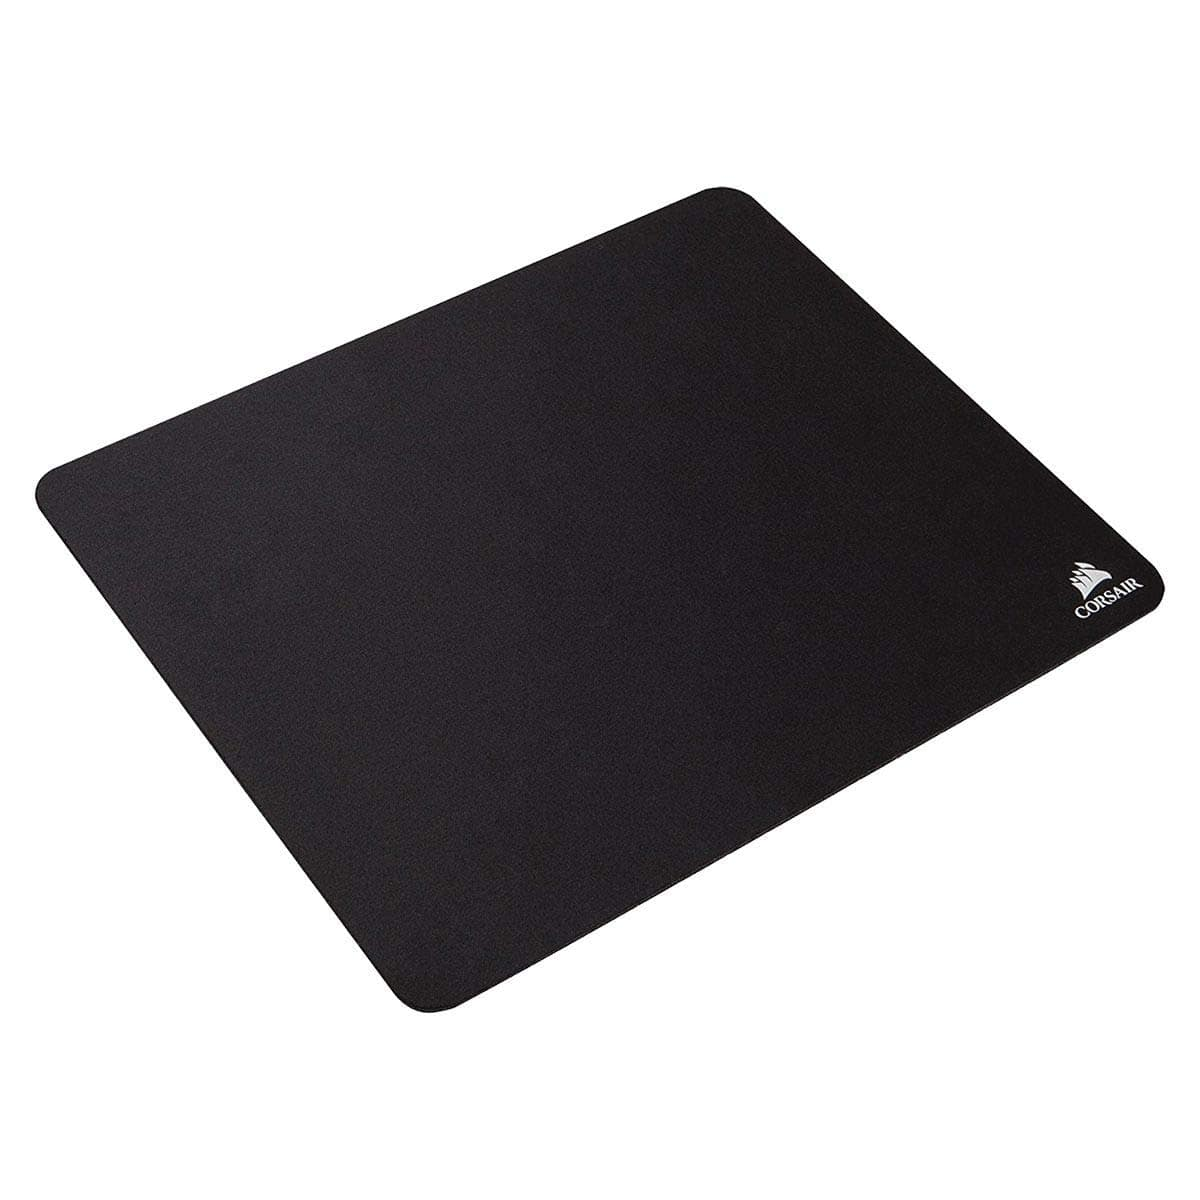 $6.99 FS CORSAIR CH-9100020-WW - Cloth Mouse Pad - High-Performance Mouse Pad Optimized for Gaming Sensors - Designed for Maximum Control